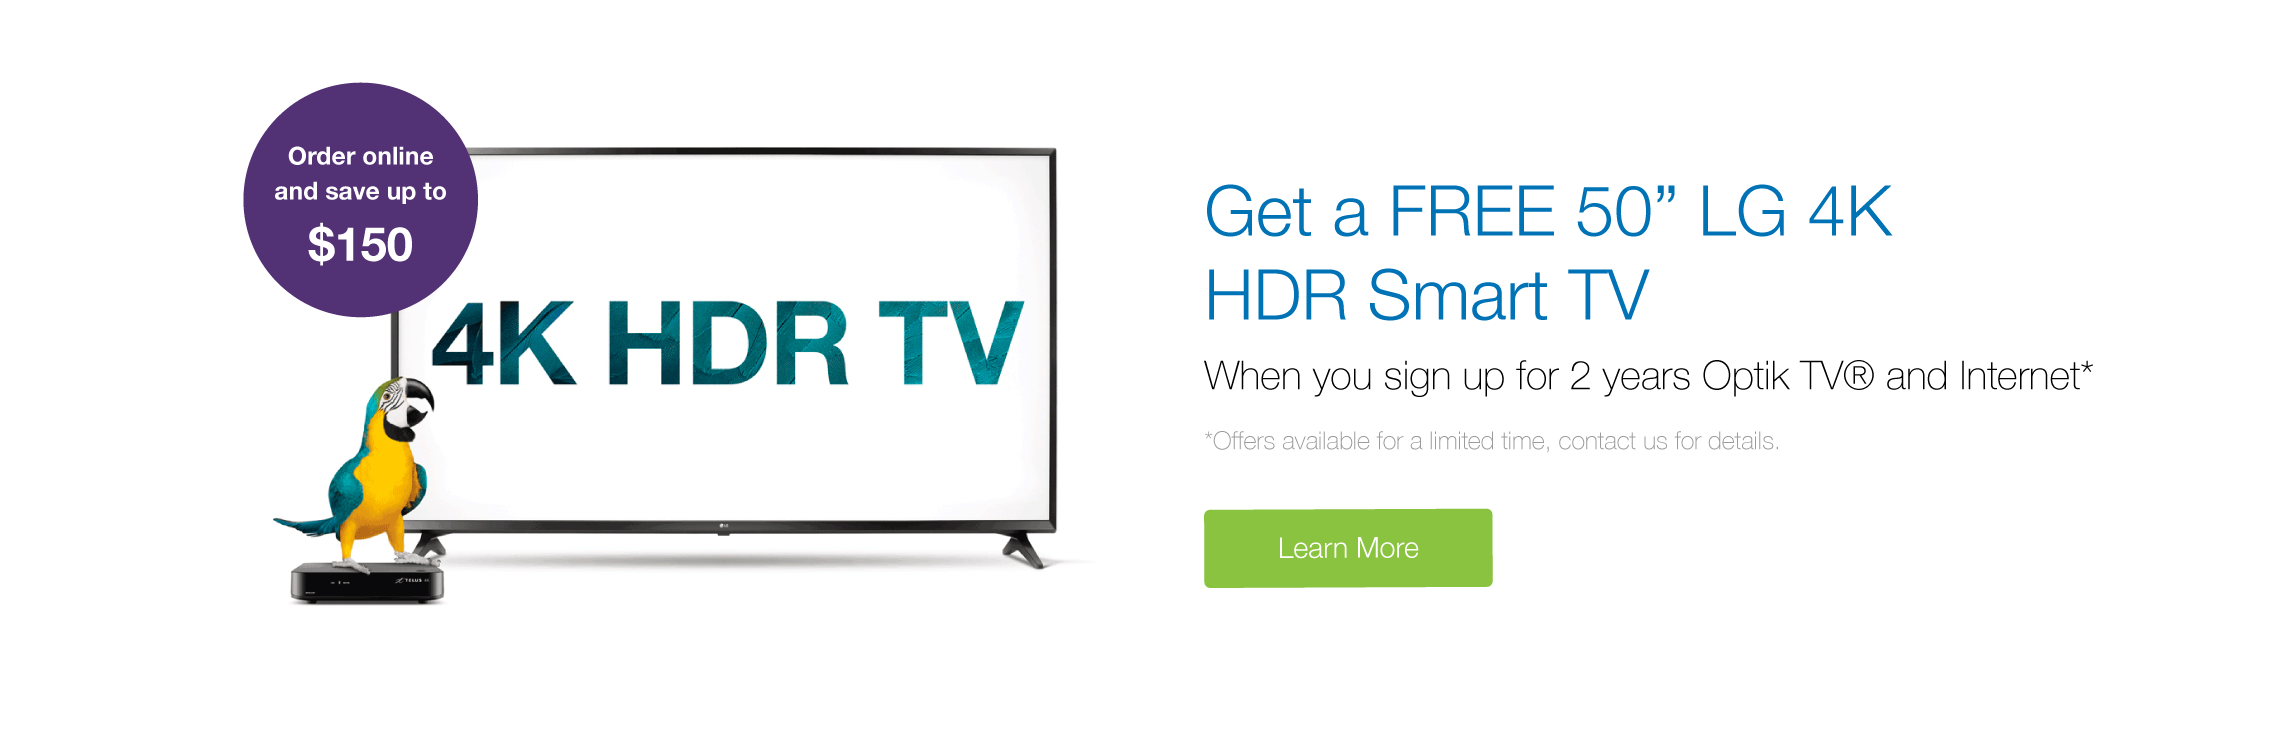 "Get a FREE 50"" LG4K HDR Smart TV with Optik TV & Internet"